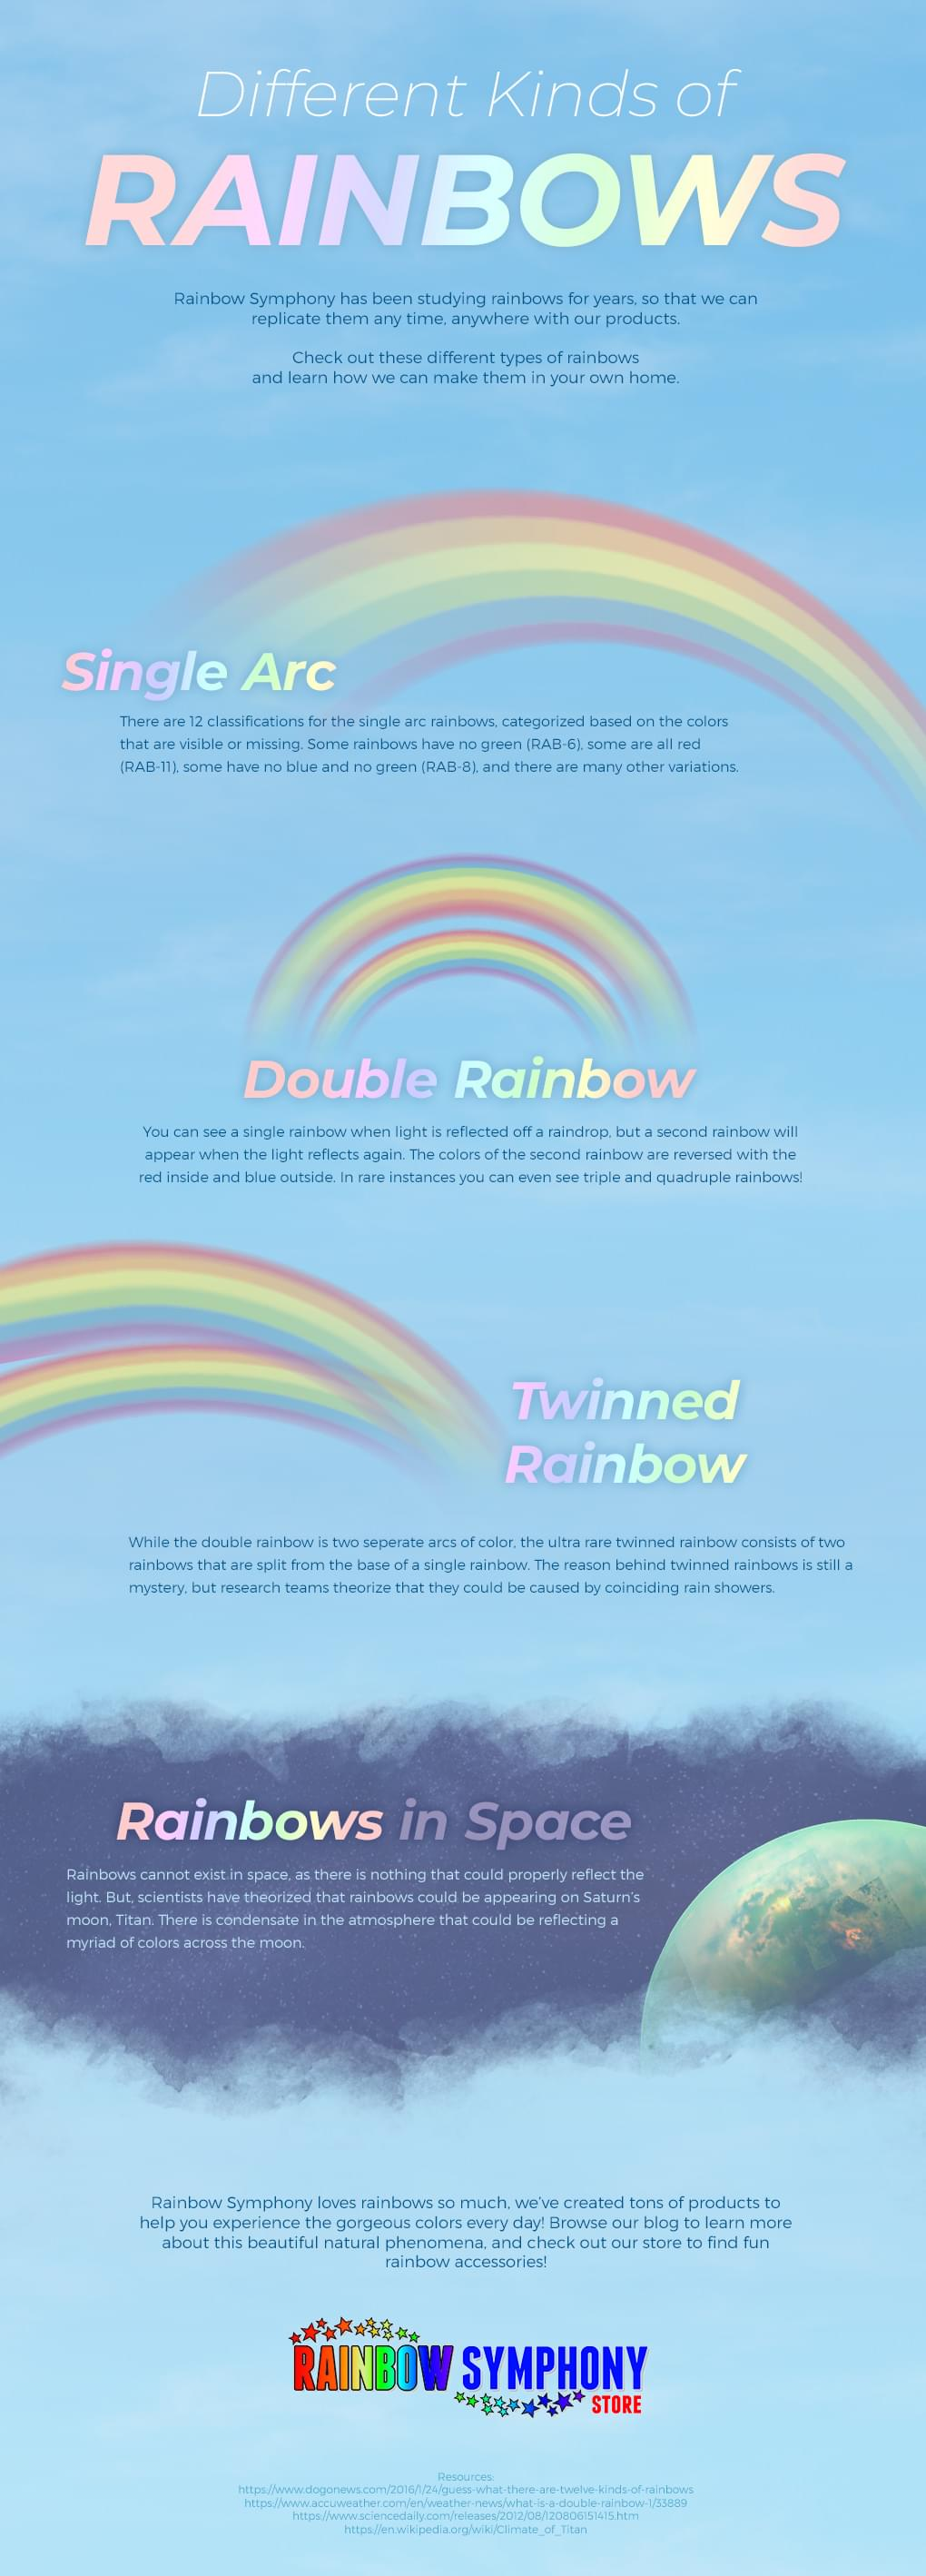 A Rainbow Symphony infographic on different kinds of rainbows